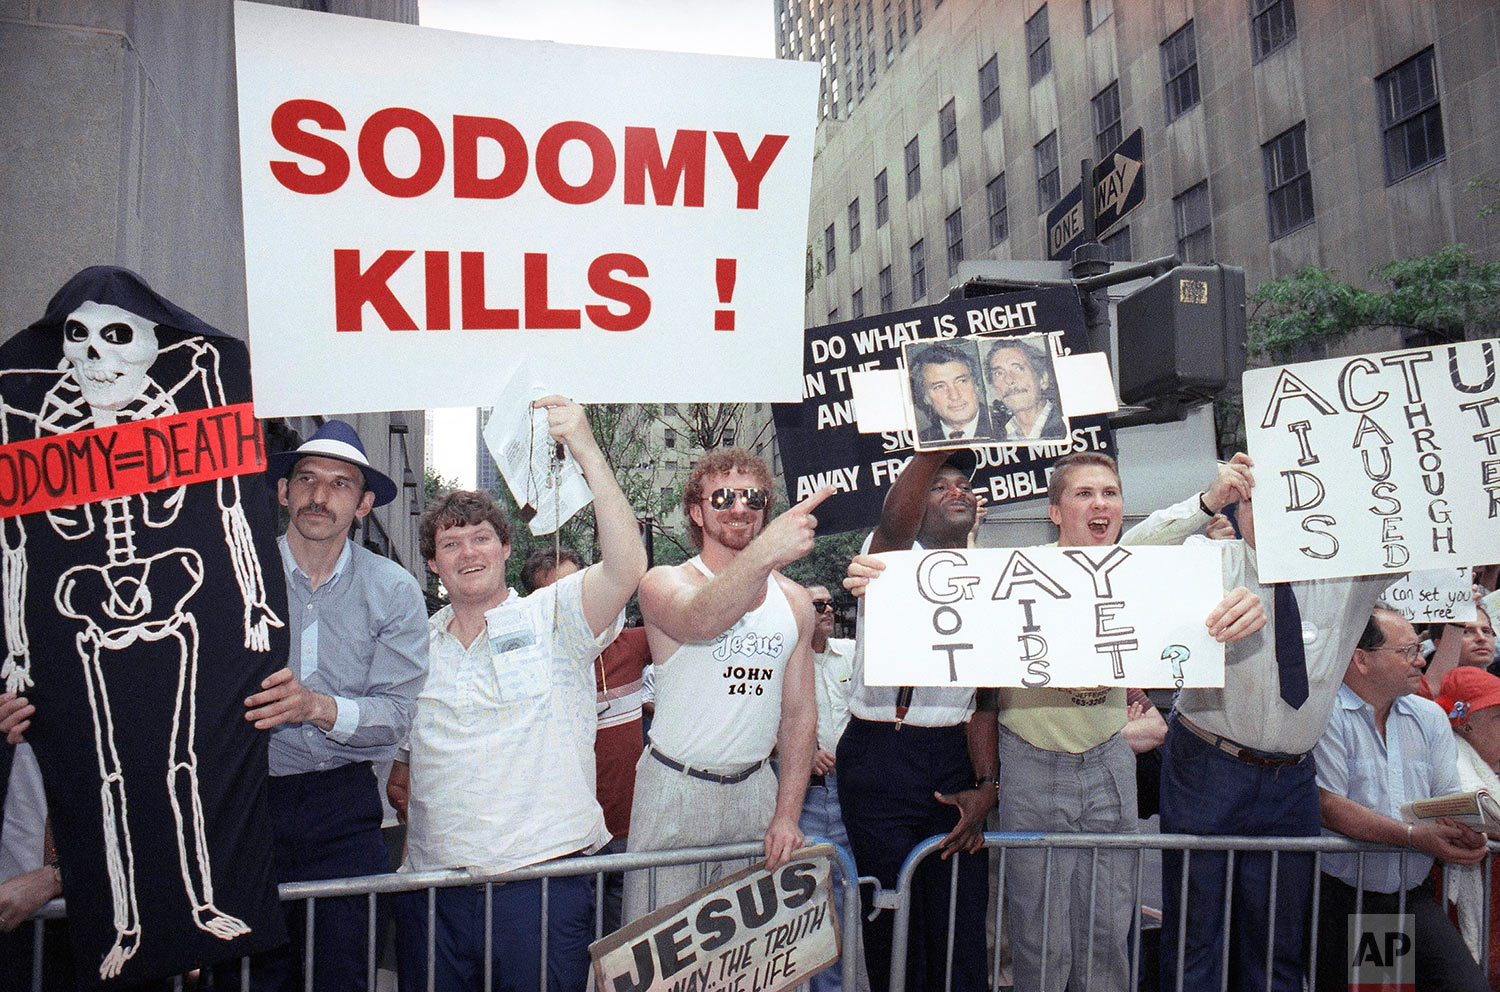 In this Sunday, June 25, 1990 file photo, anti-gay protesters heckle marchers in the Gay Pride Parade along Fifth Avenue in New York. About 200,000 people marched in the 21st annual gay and lesbian parade in Manhattan demanding better AIDS treatment and civil rights. (AP Photo/David A. Cantor)